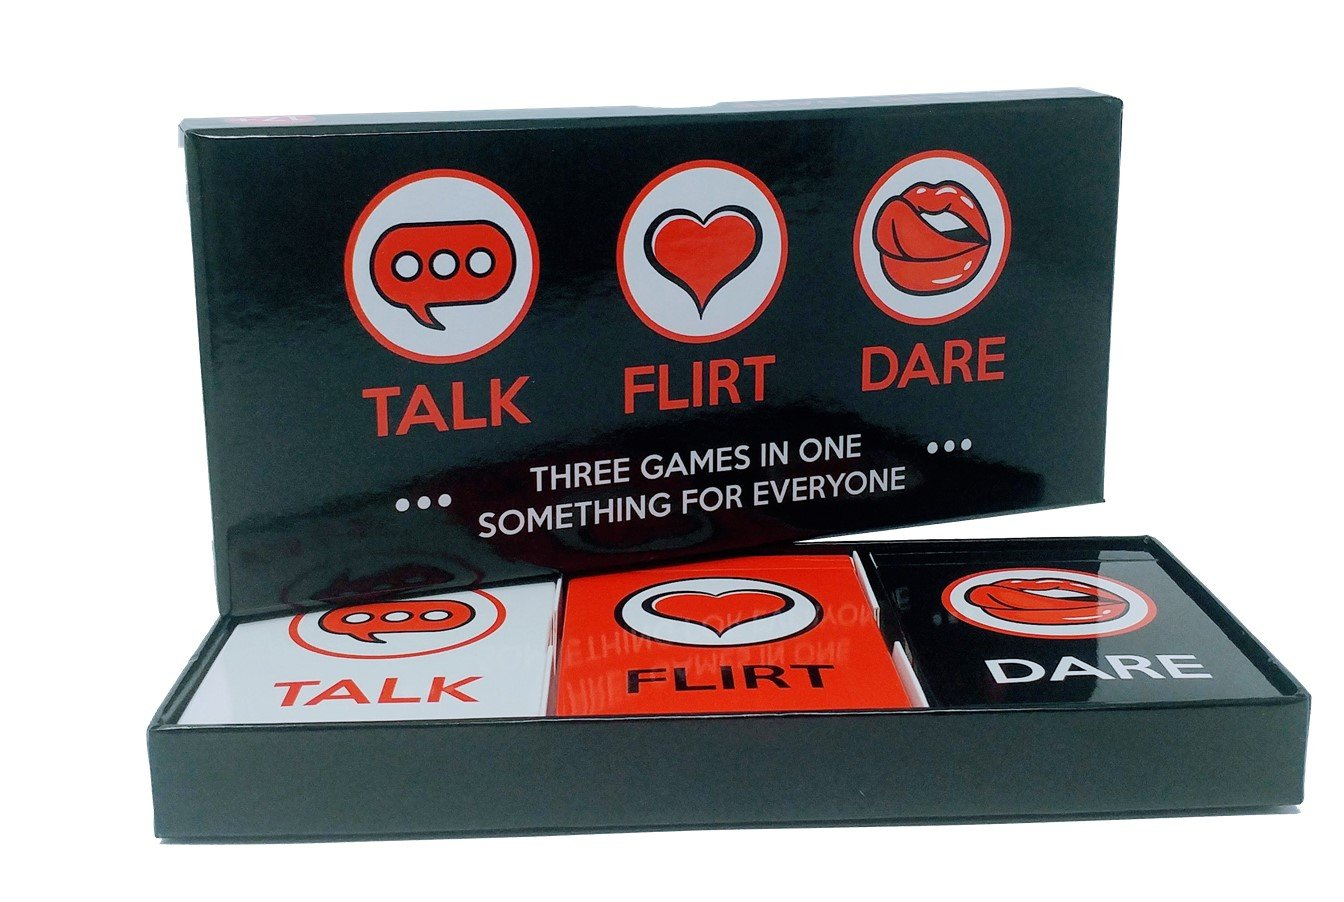 ARTAGIA Fun and Romantic Game for Couples: Date Night Box Set with Conversation Starters, Flirty Games and Cool Dares - Choose from Talk, Flirt or Dare Cards for 3 Games in 1 - Perfect